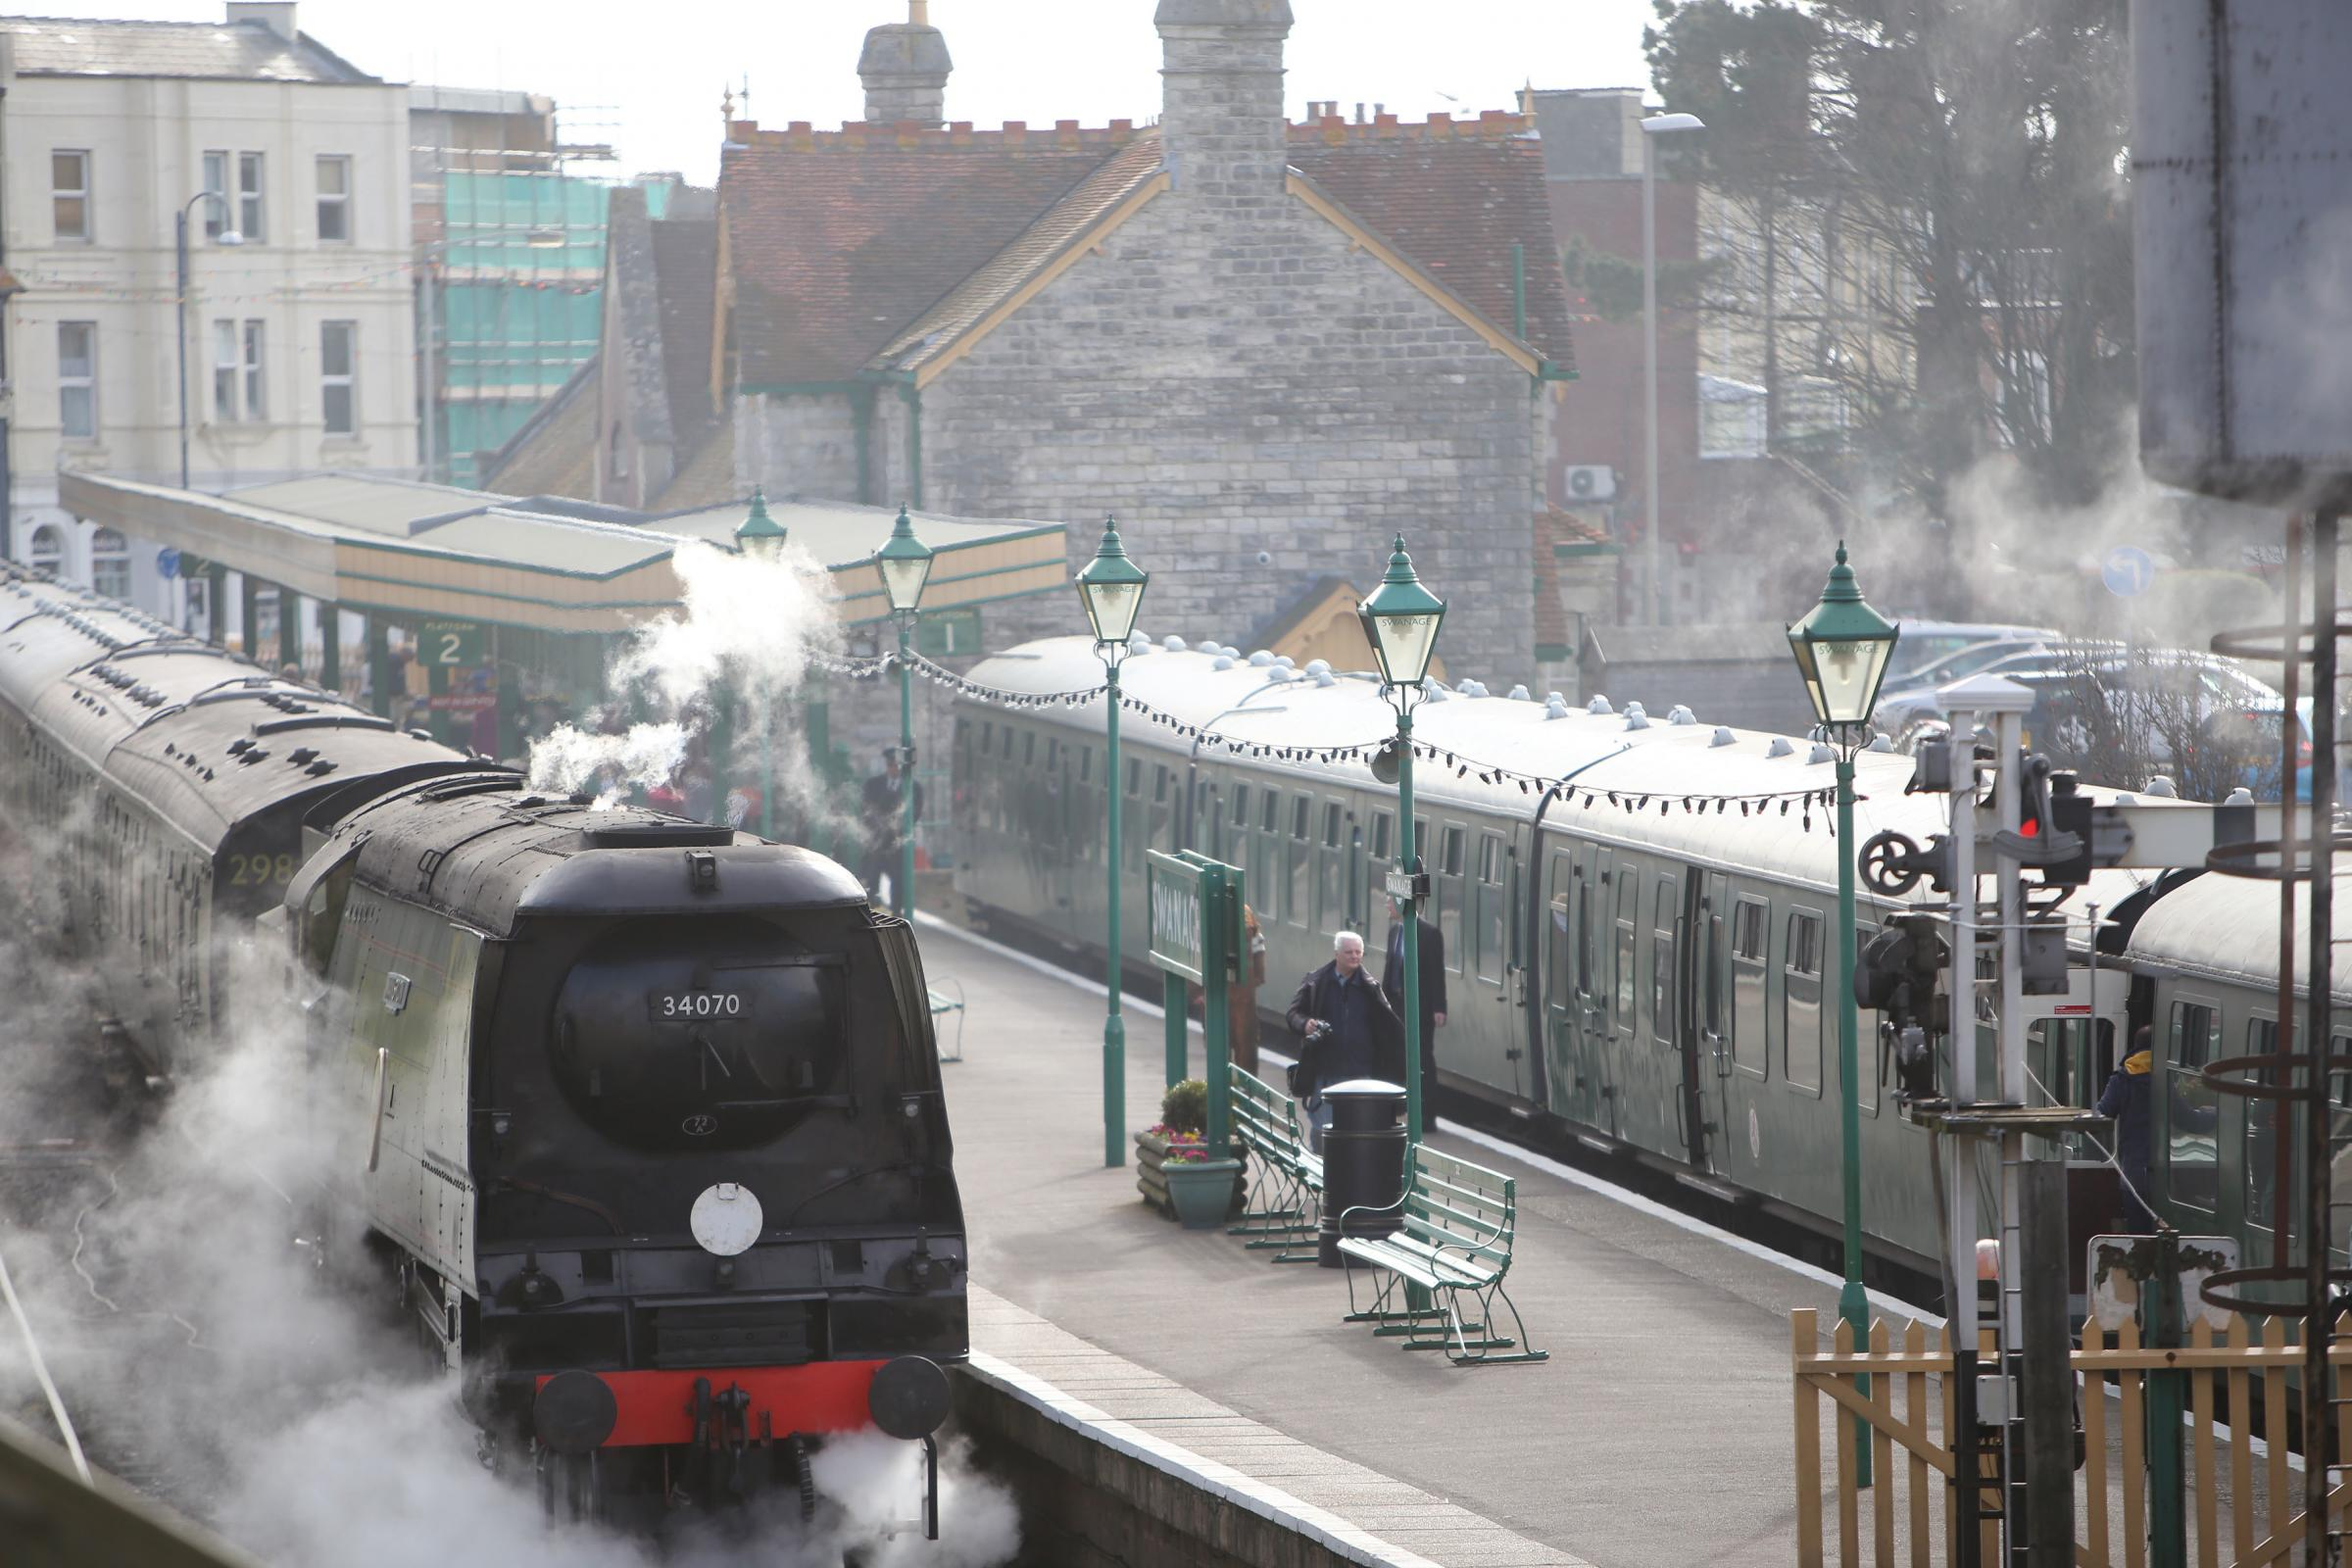 Swanage Railway station